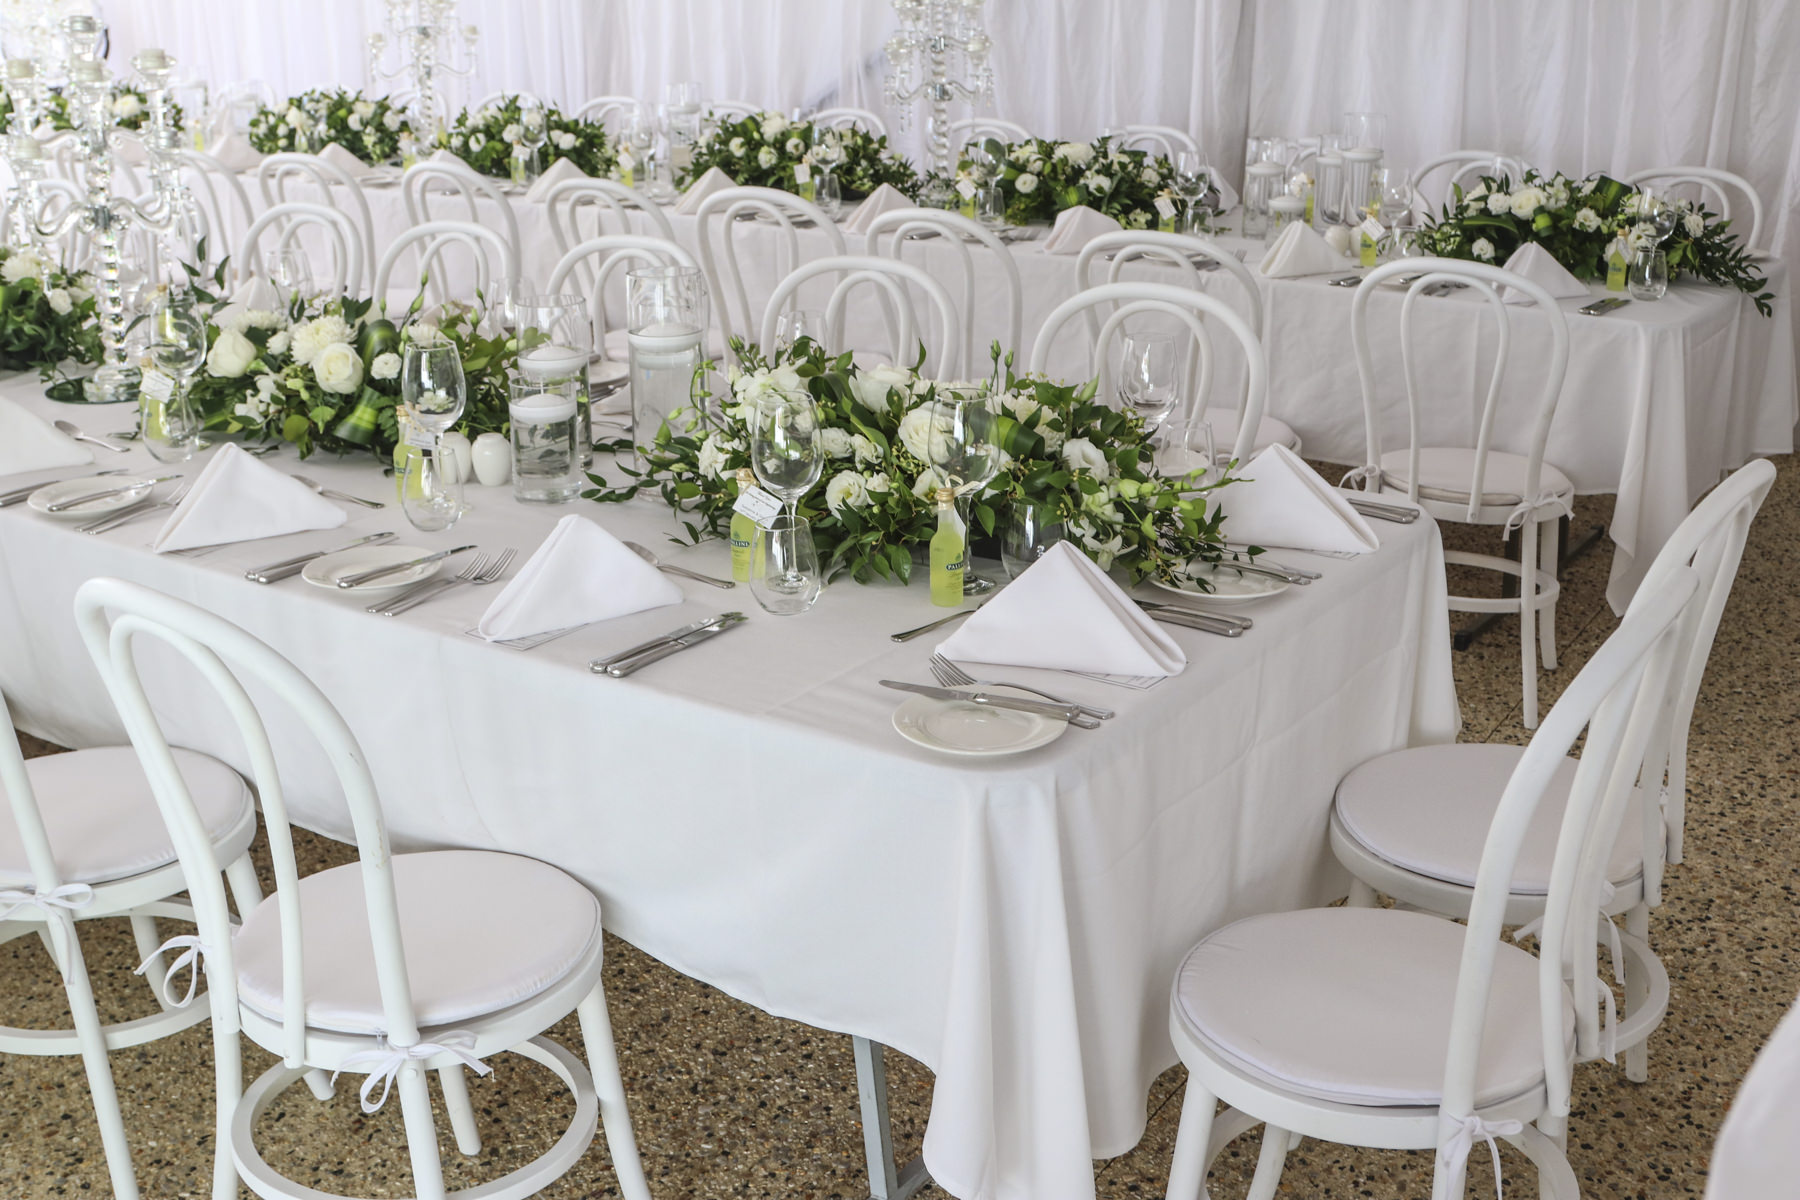 White wedding tables and chairs